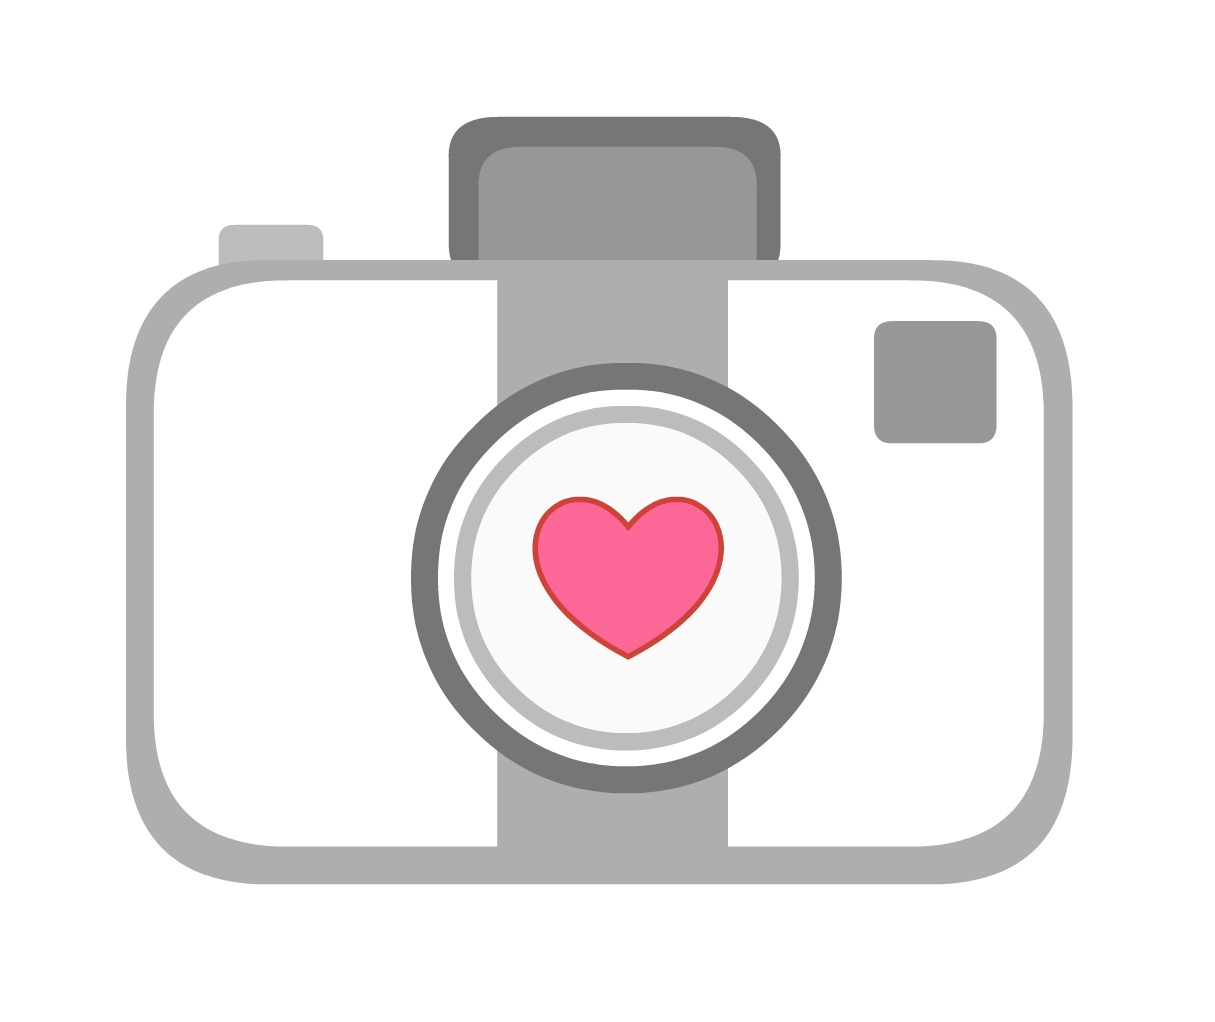 Photographer clipart day. Free camera cliparts download